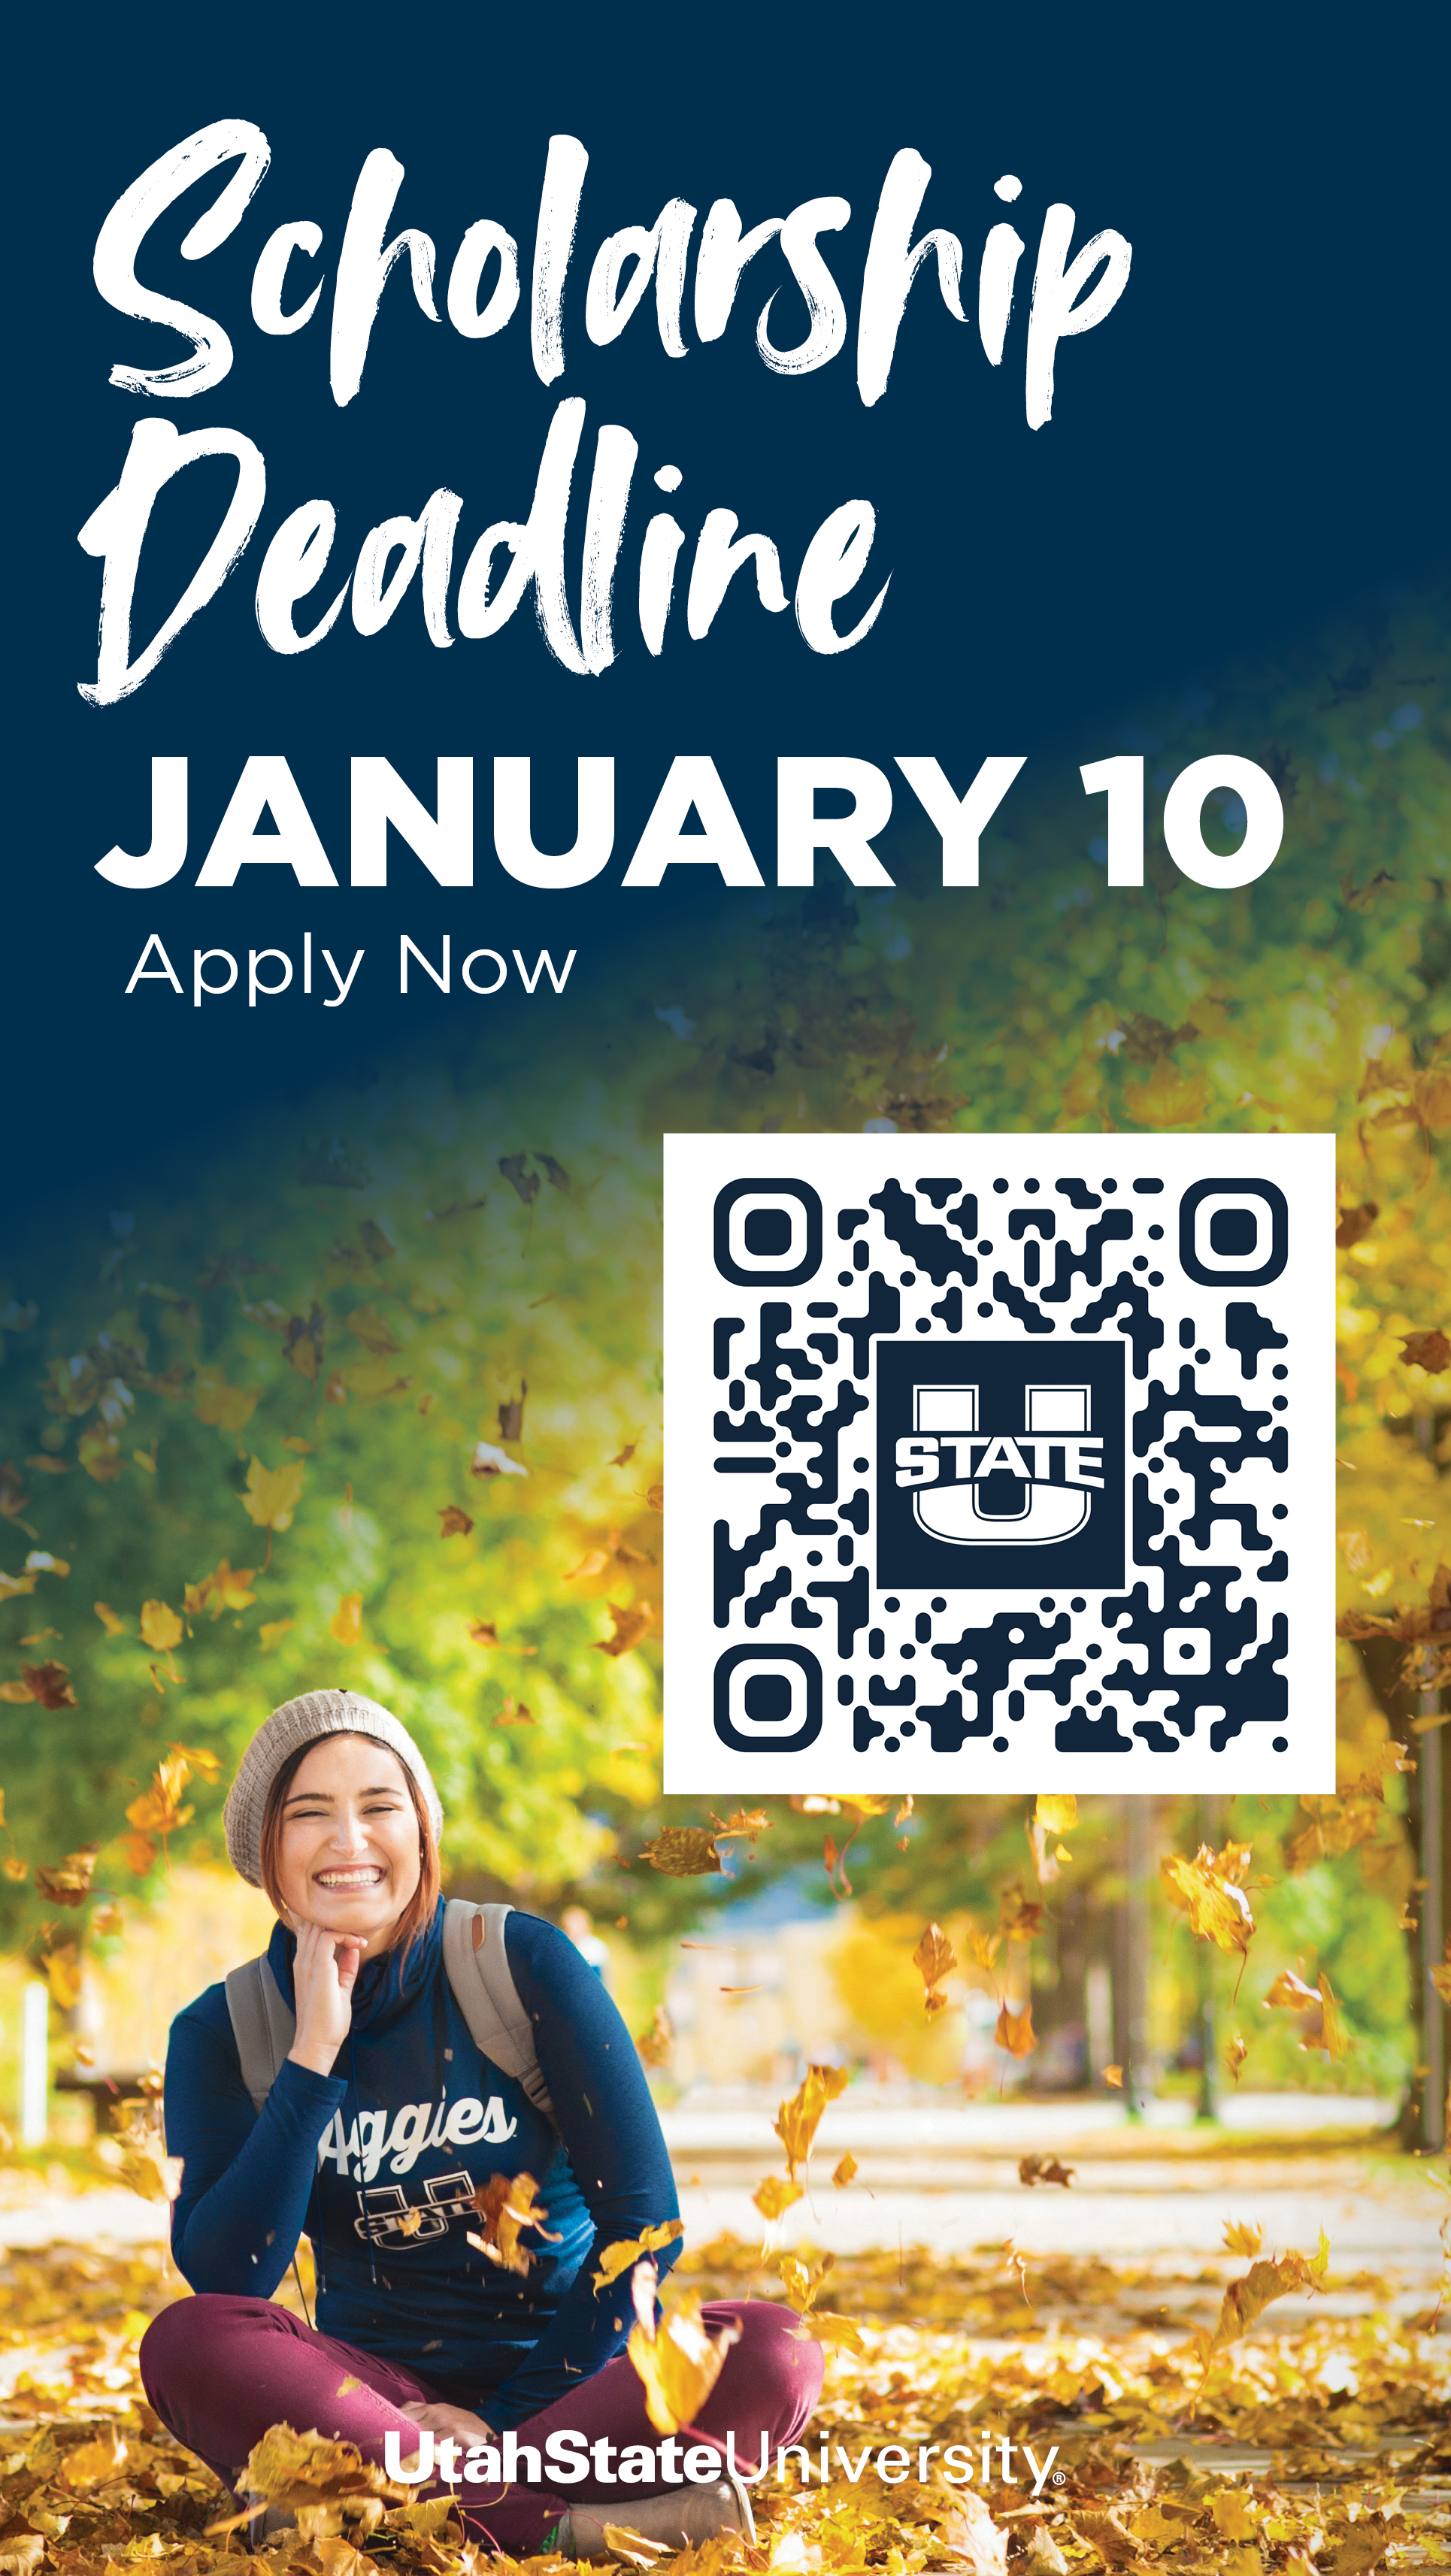 USU Term 3 ScholarshipDeadline